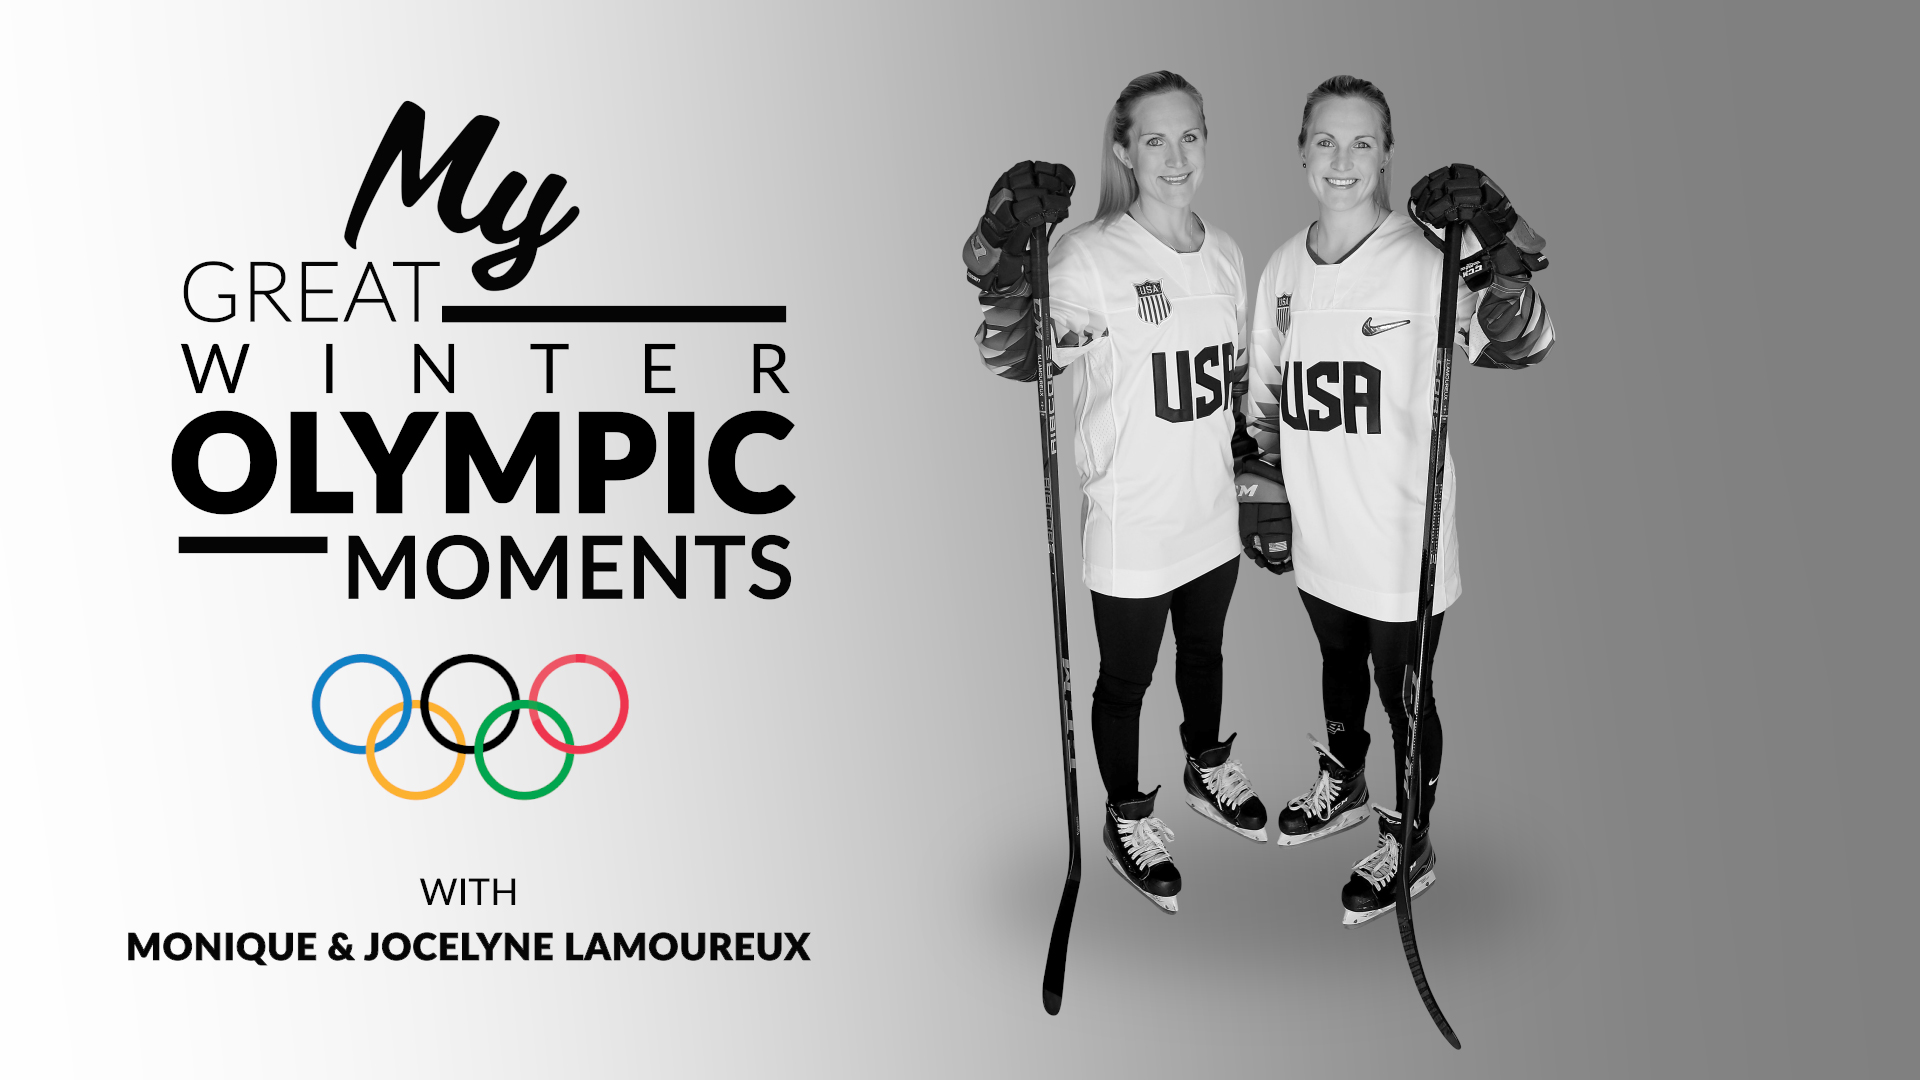 My Great Winter Olympic Moments with Monique & Jocelyne Lamoureux